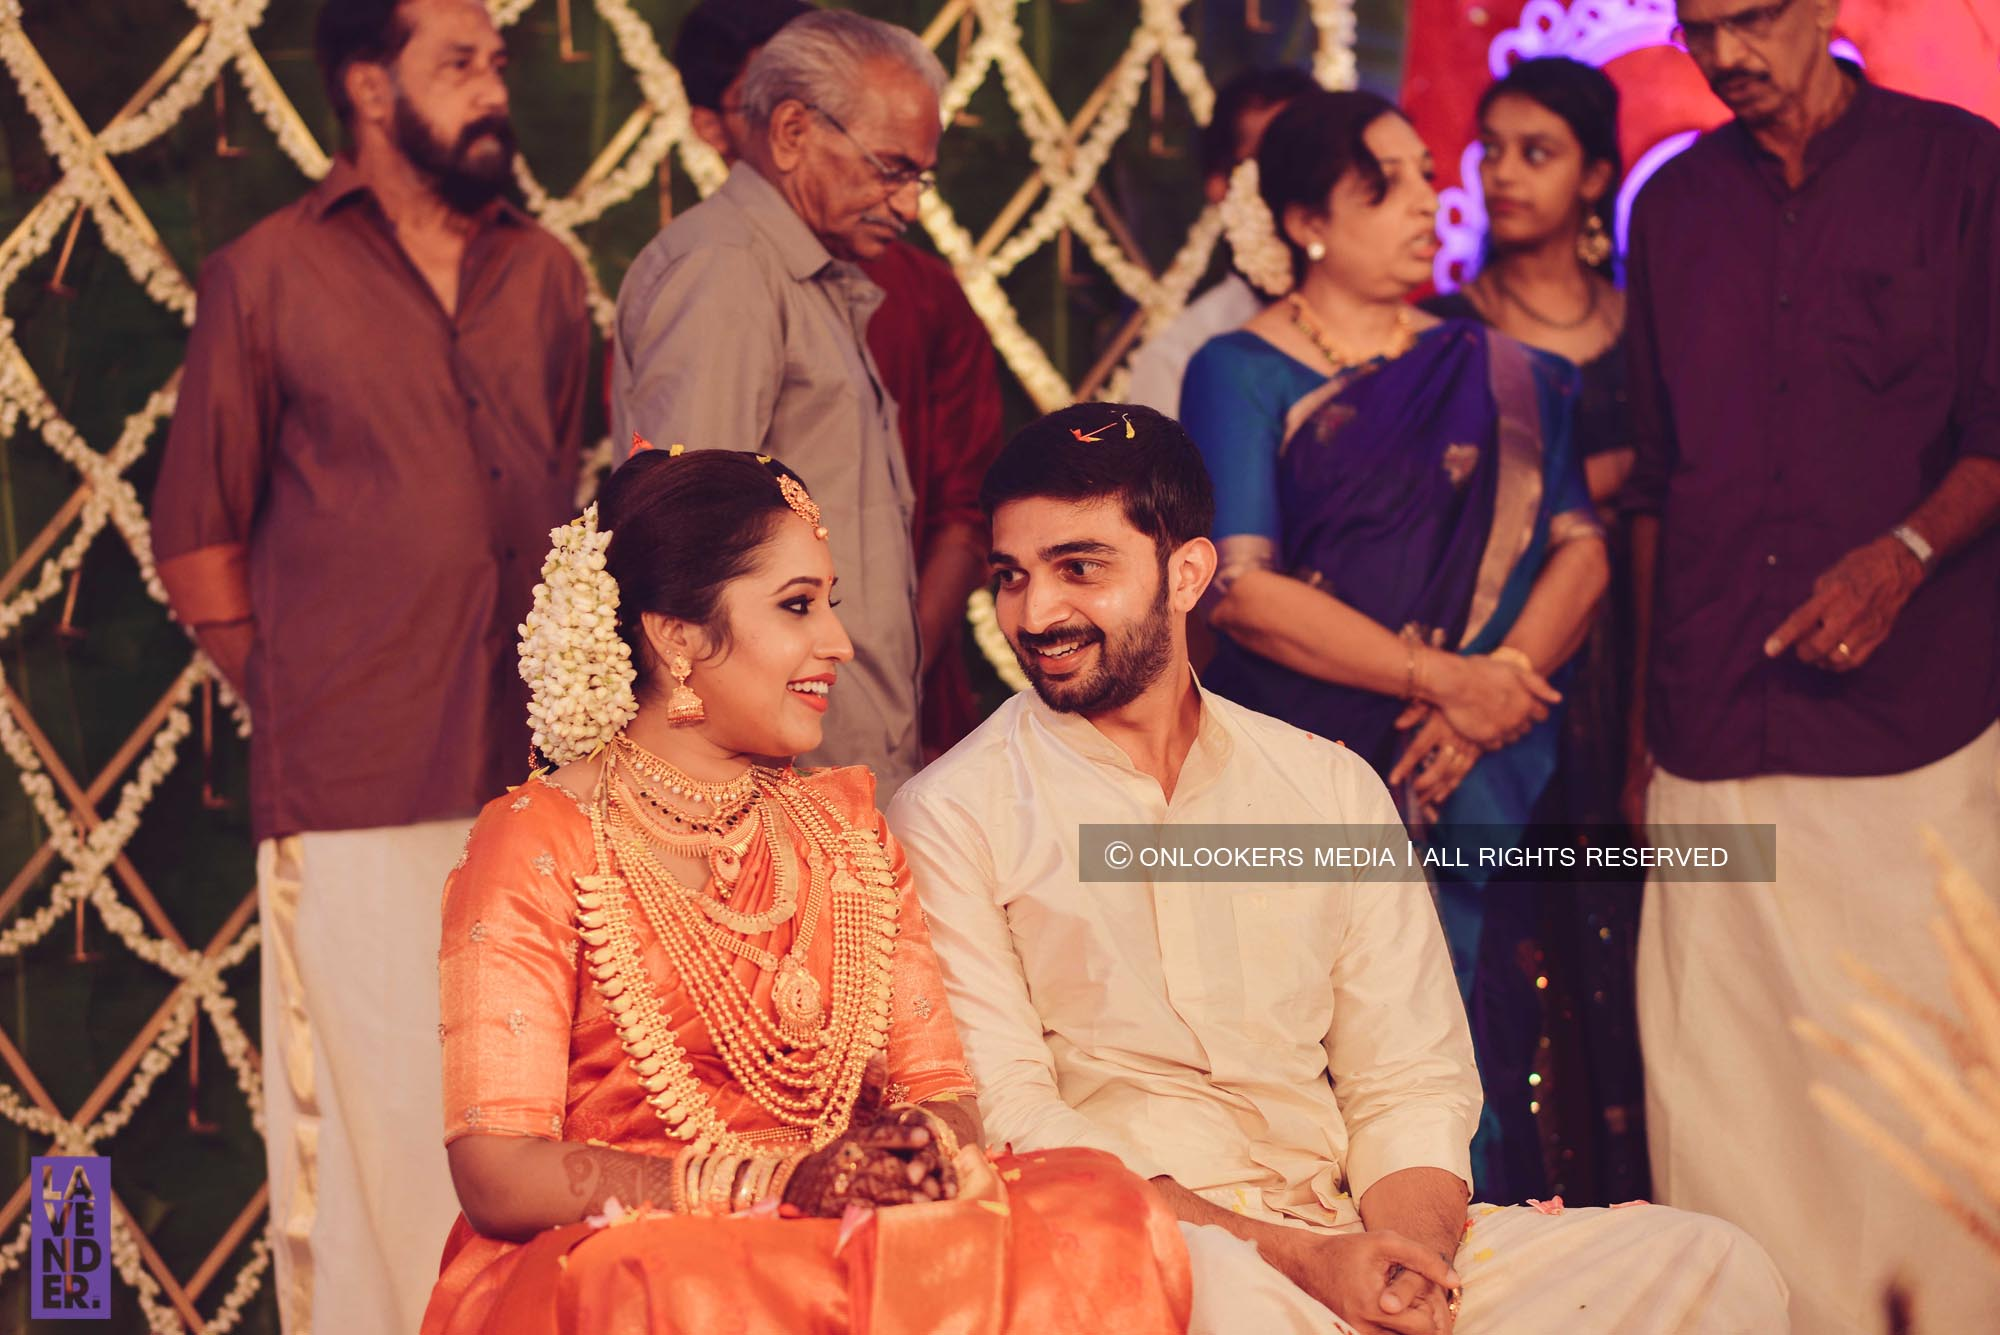 http://onlookersmedia.in/wp-content/uploads/2018/05/sreejith-vijay-wedding-stills-images-52.jpg